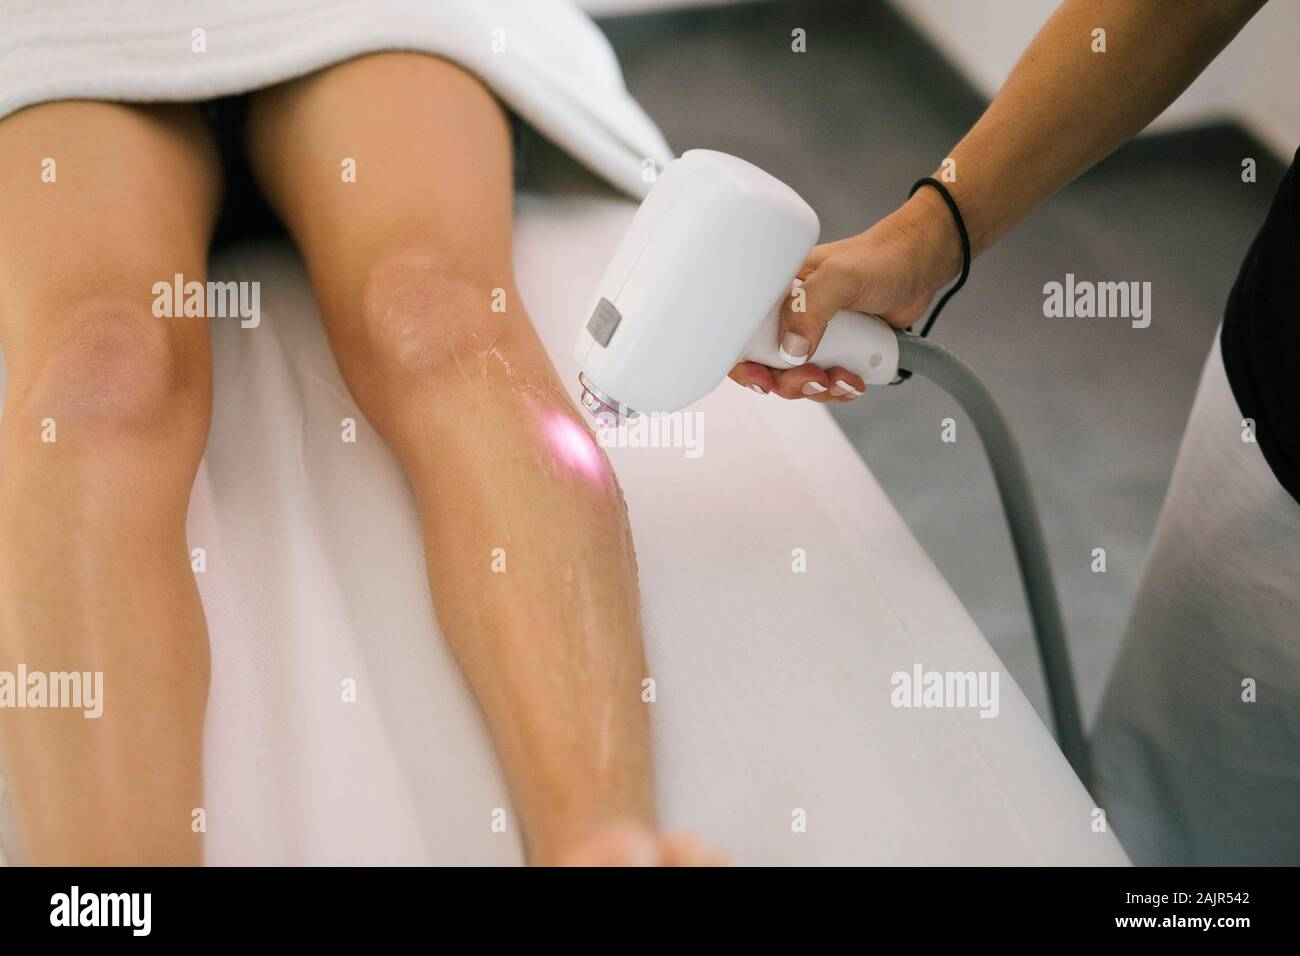 Laser Hair Removal Laser Cosmetic Treatment To Remove Unwanted